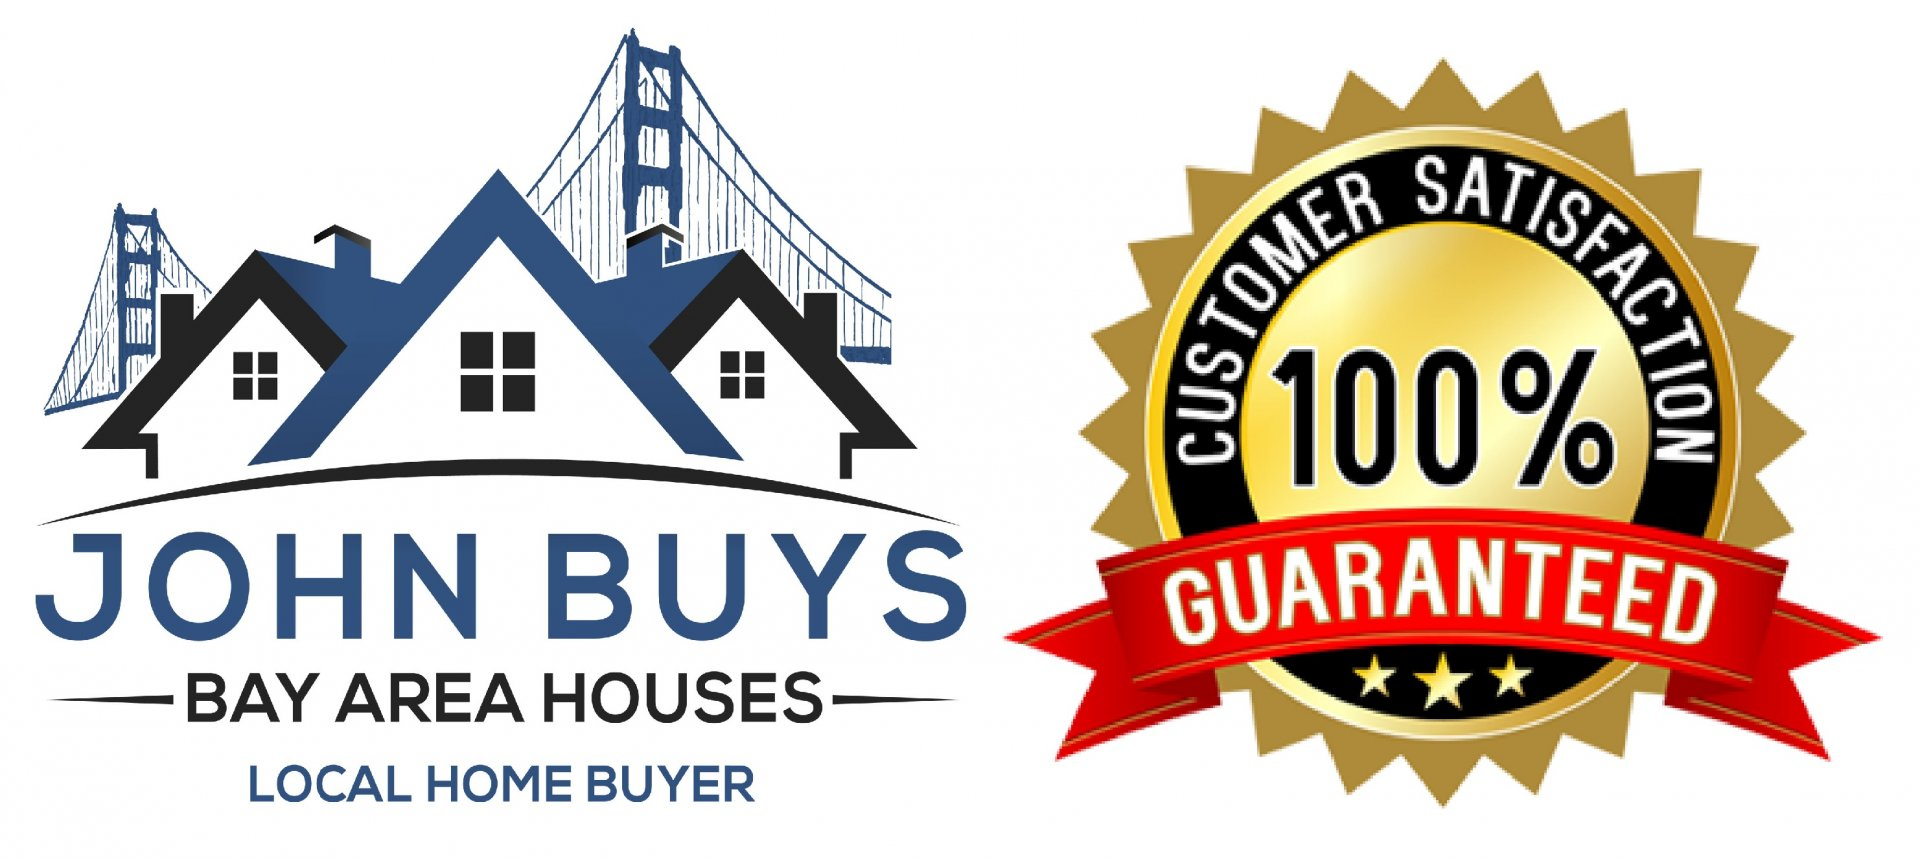 John Buys Bay Area Houses logo